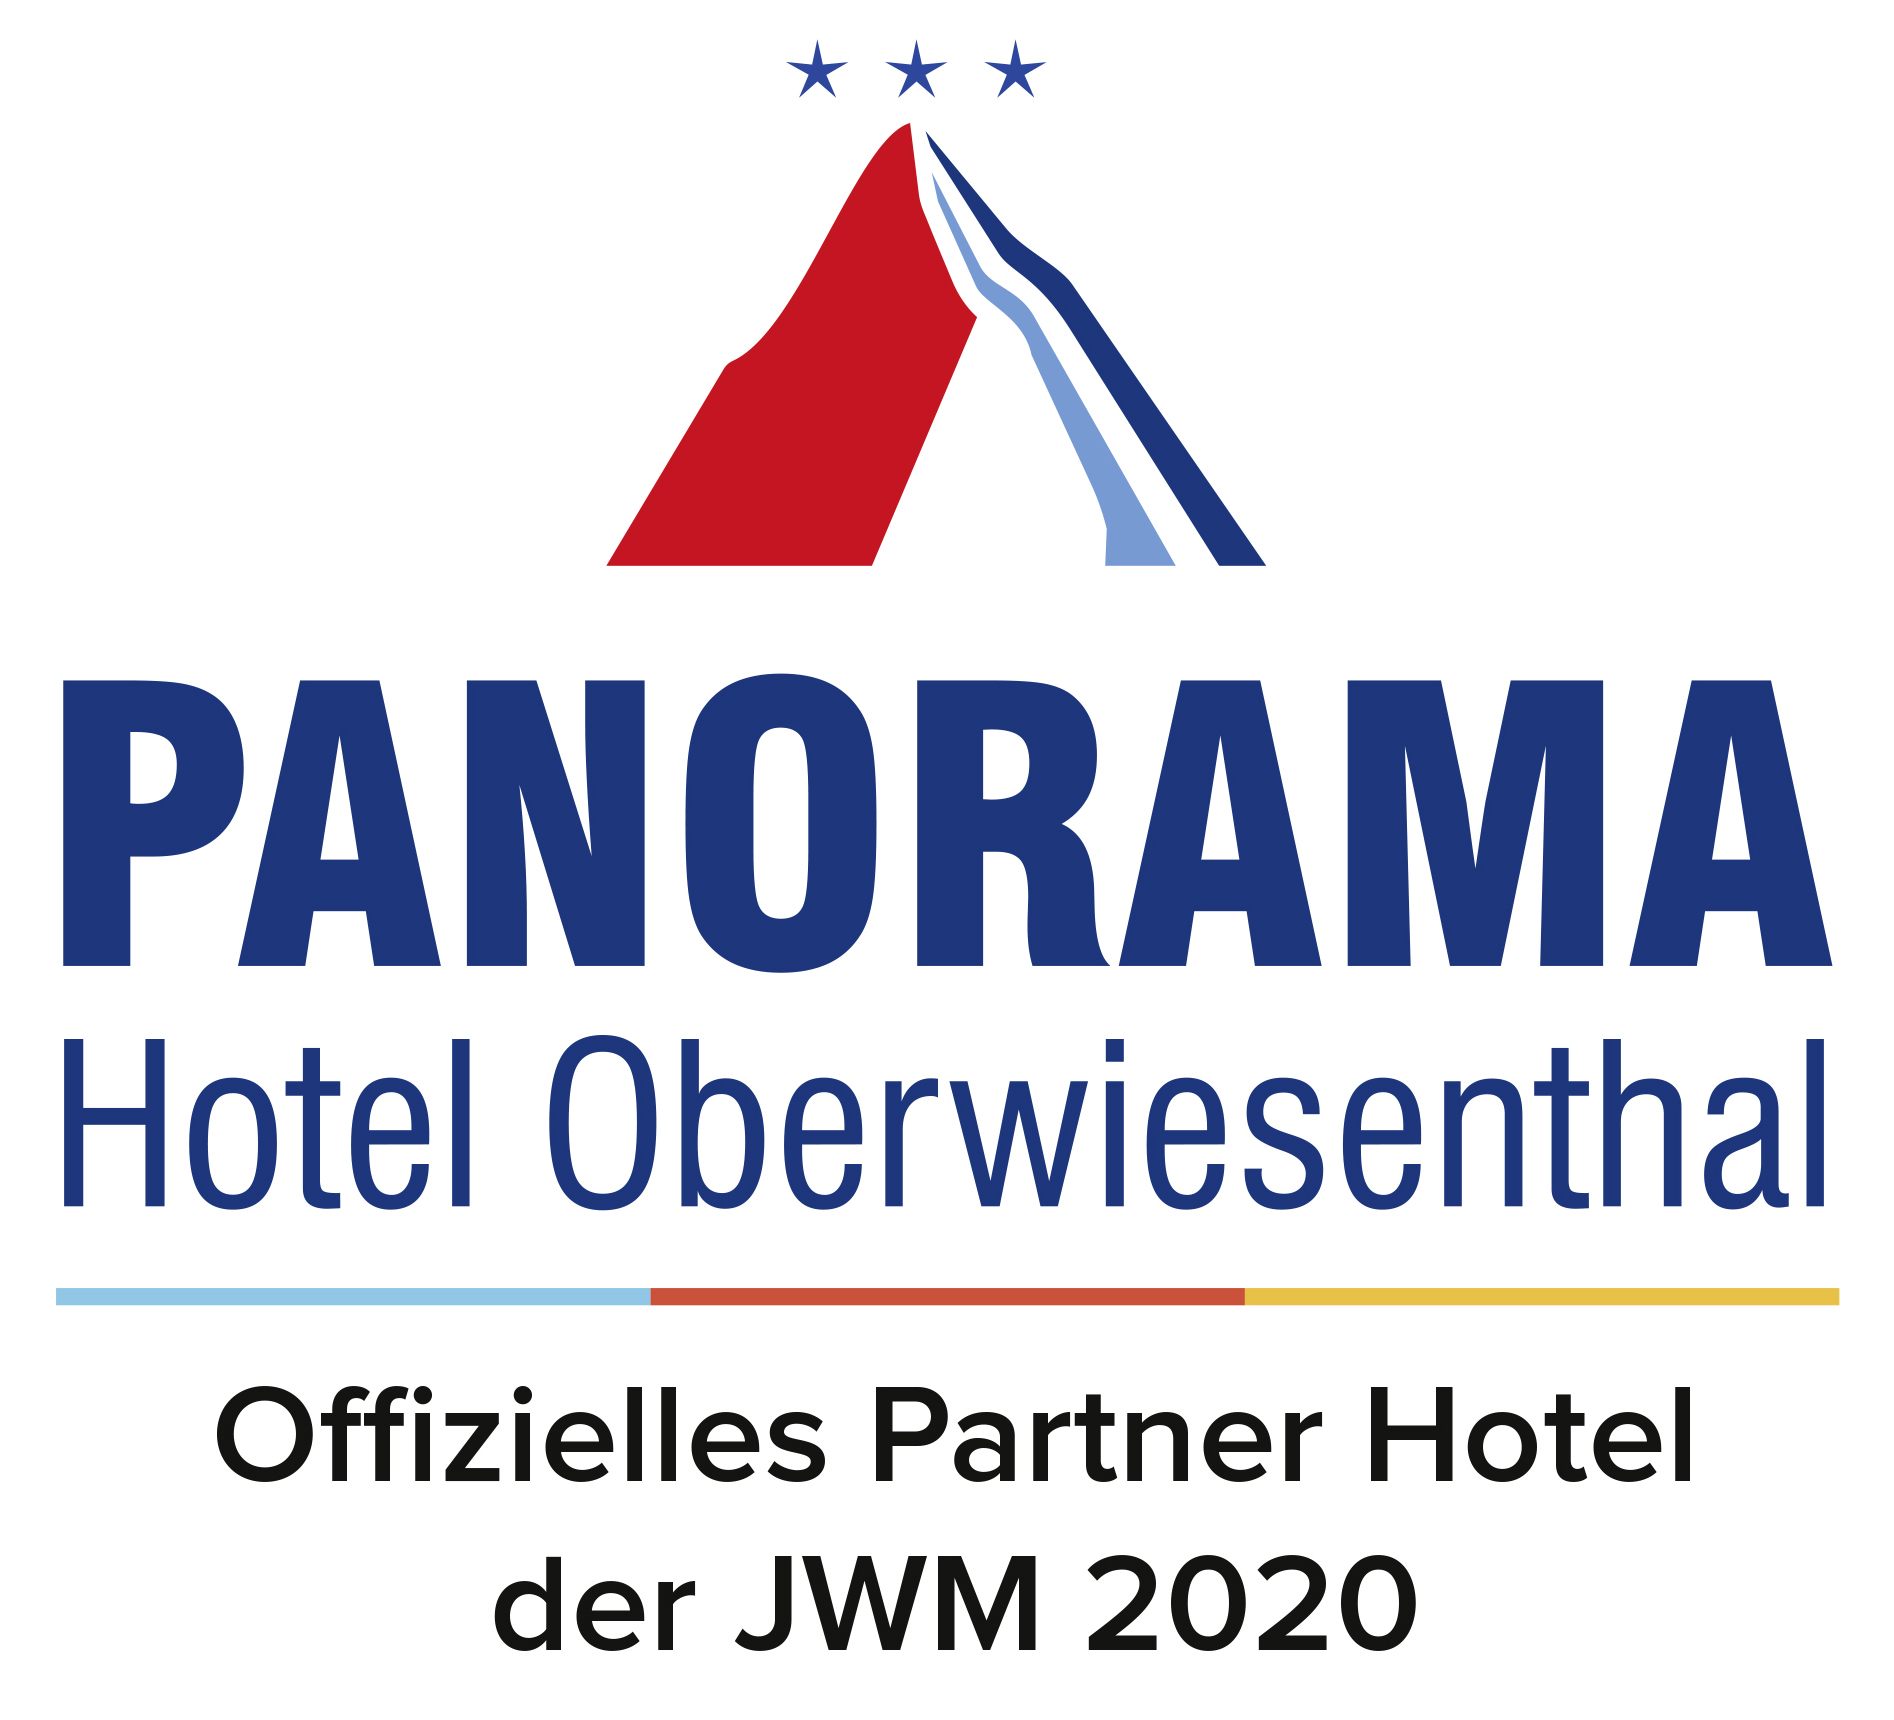 Panoramahotel Oberwiesenthal